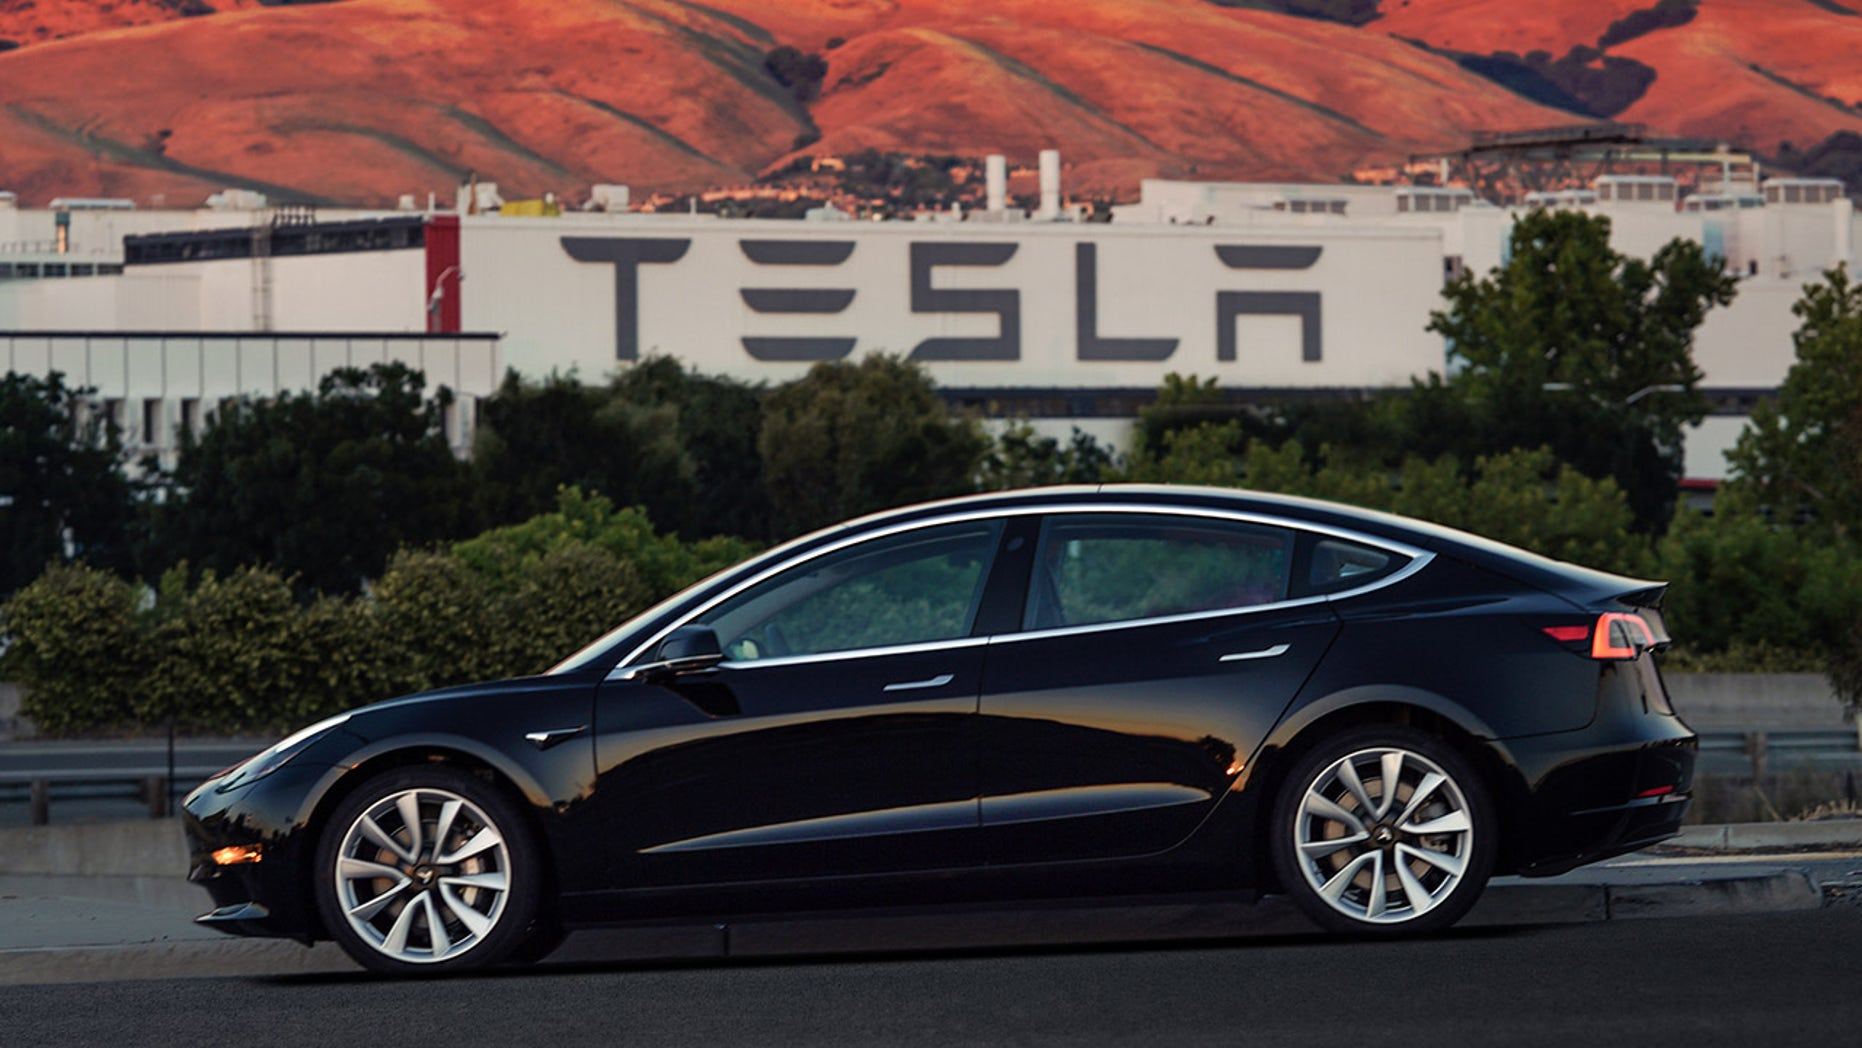 Consumer Reports Is No Longer Recommending The Tesla Model 3 After Receiving A Large Number Of Complaints From Its Members About Electric Sedan S